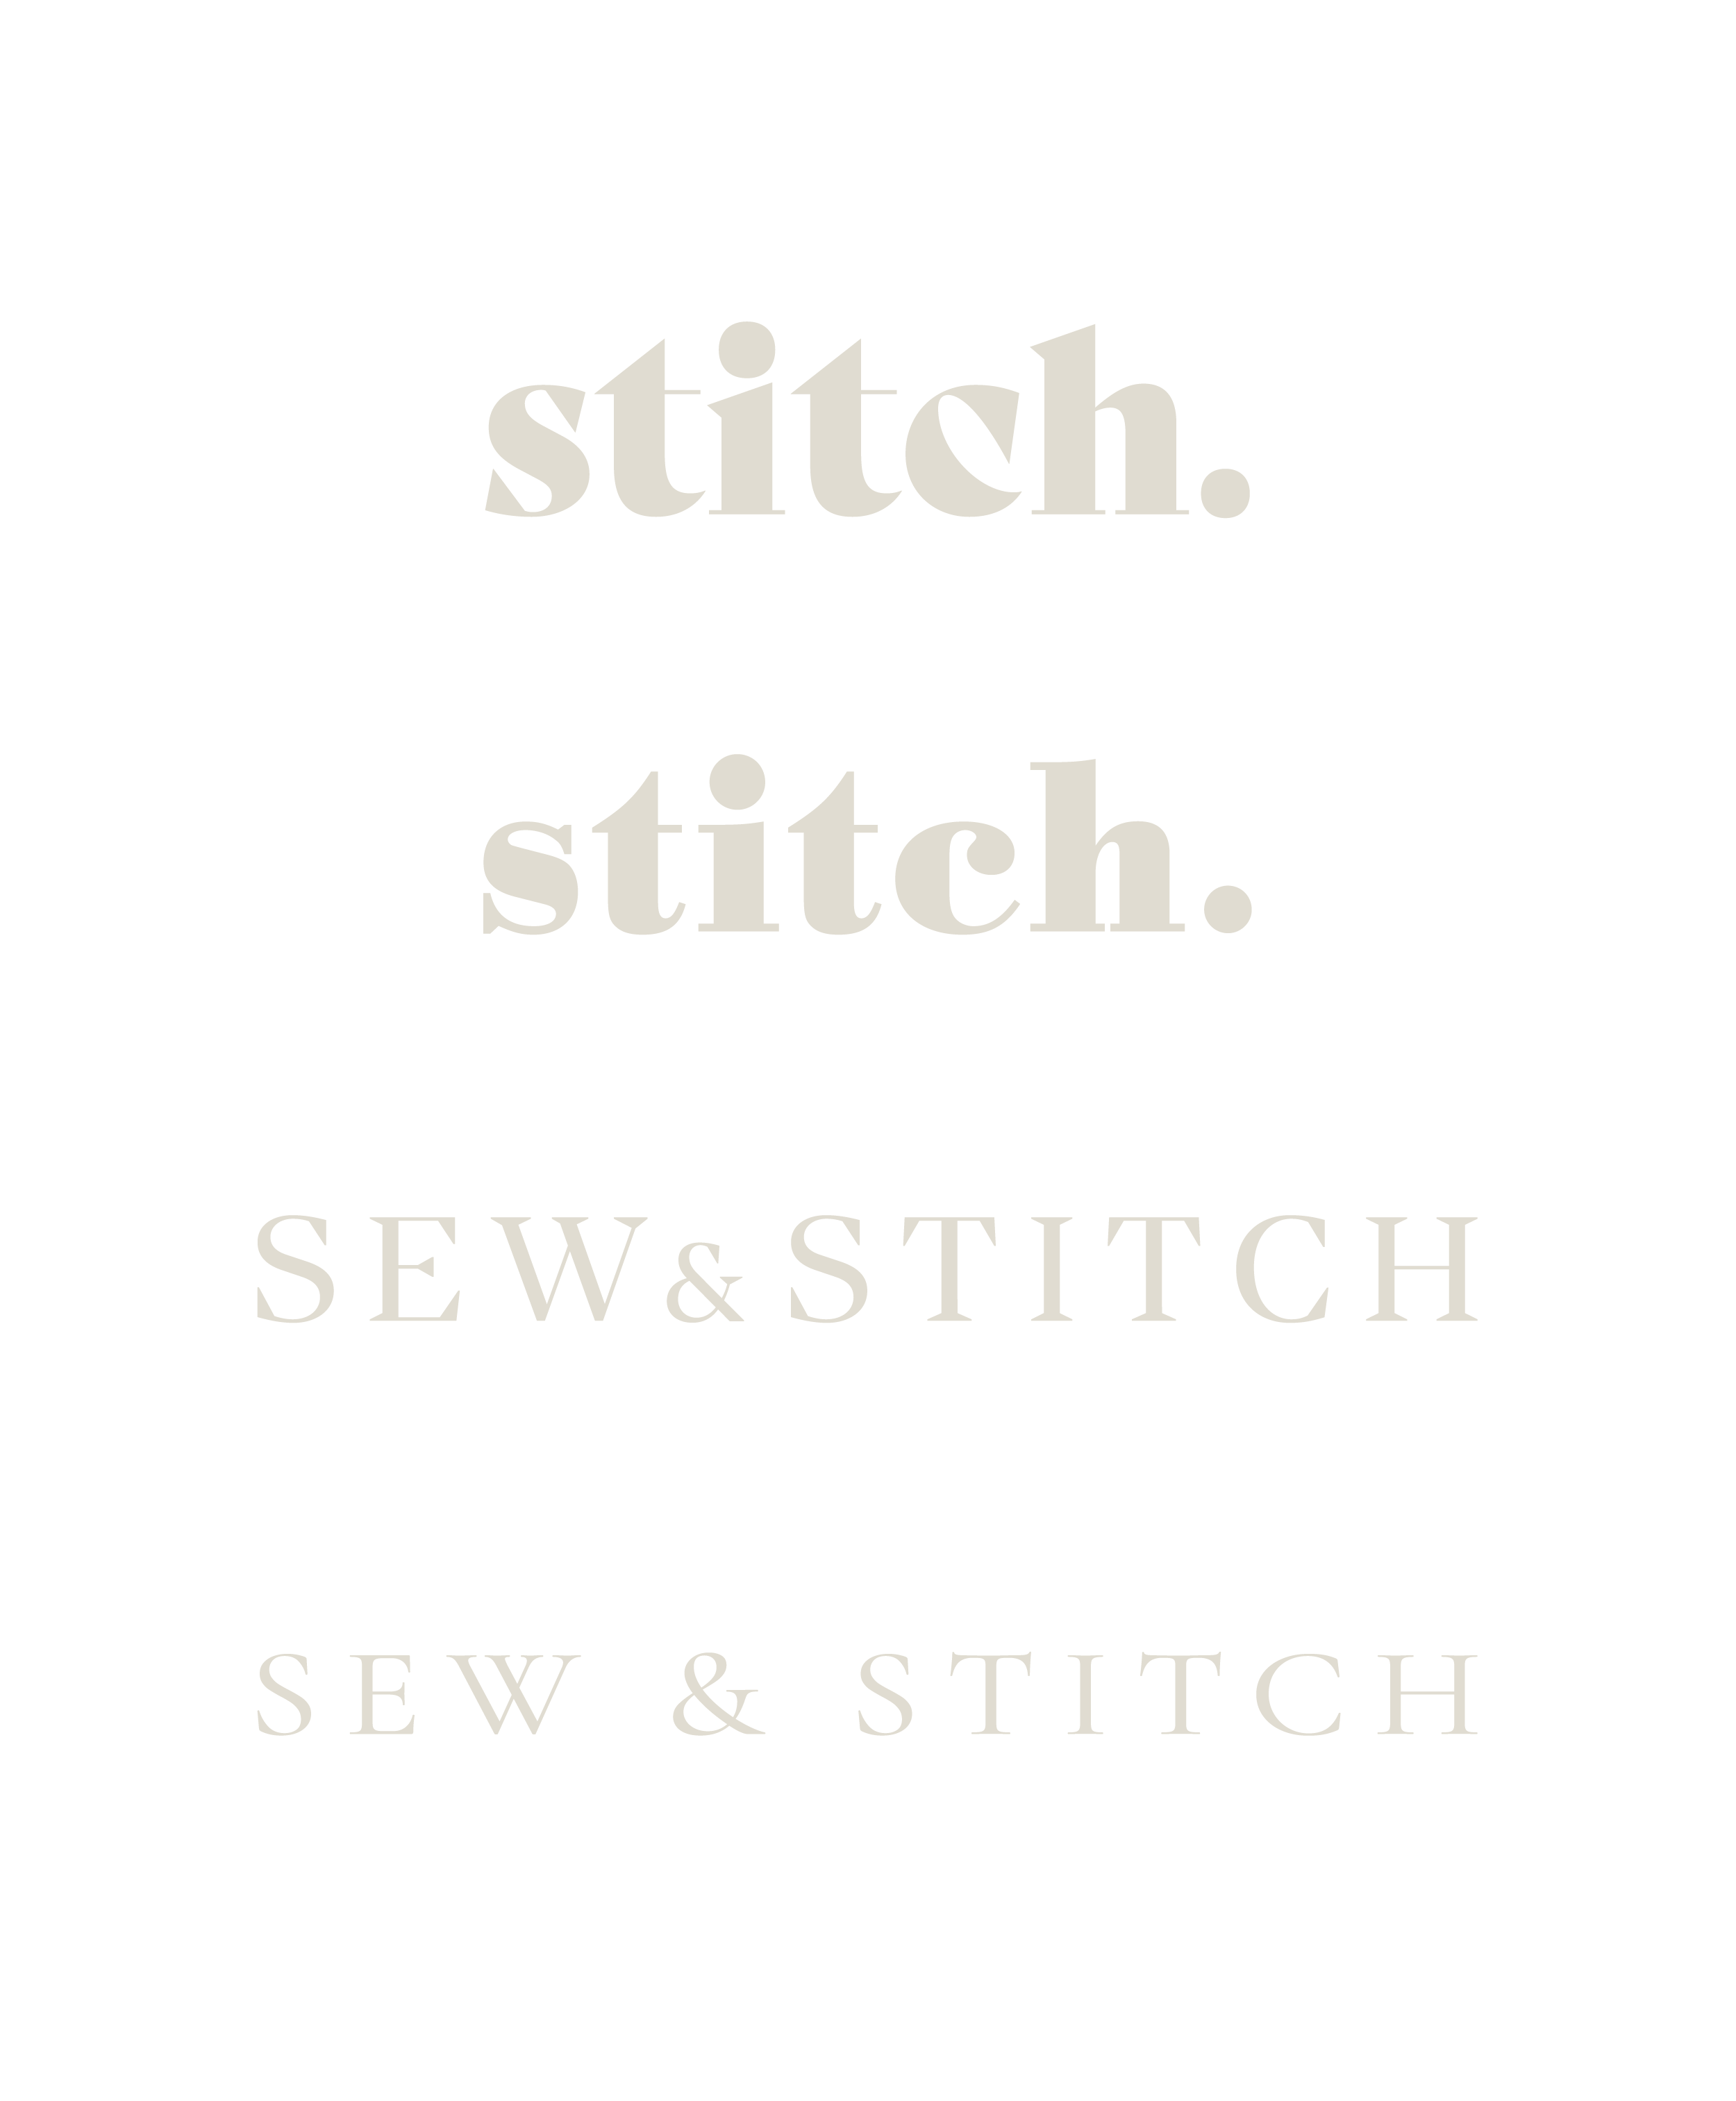 various iterations of the sew & stitch logo